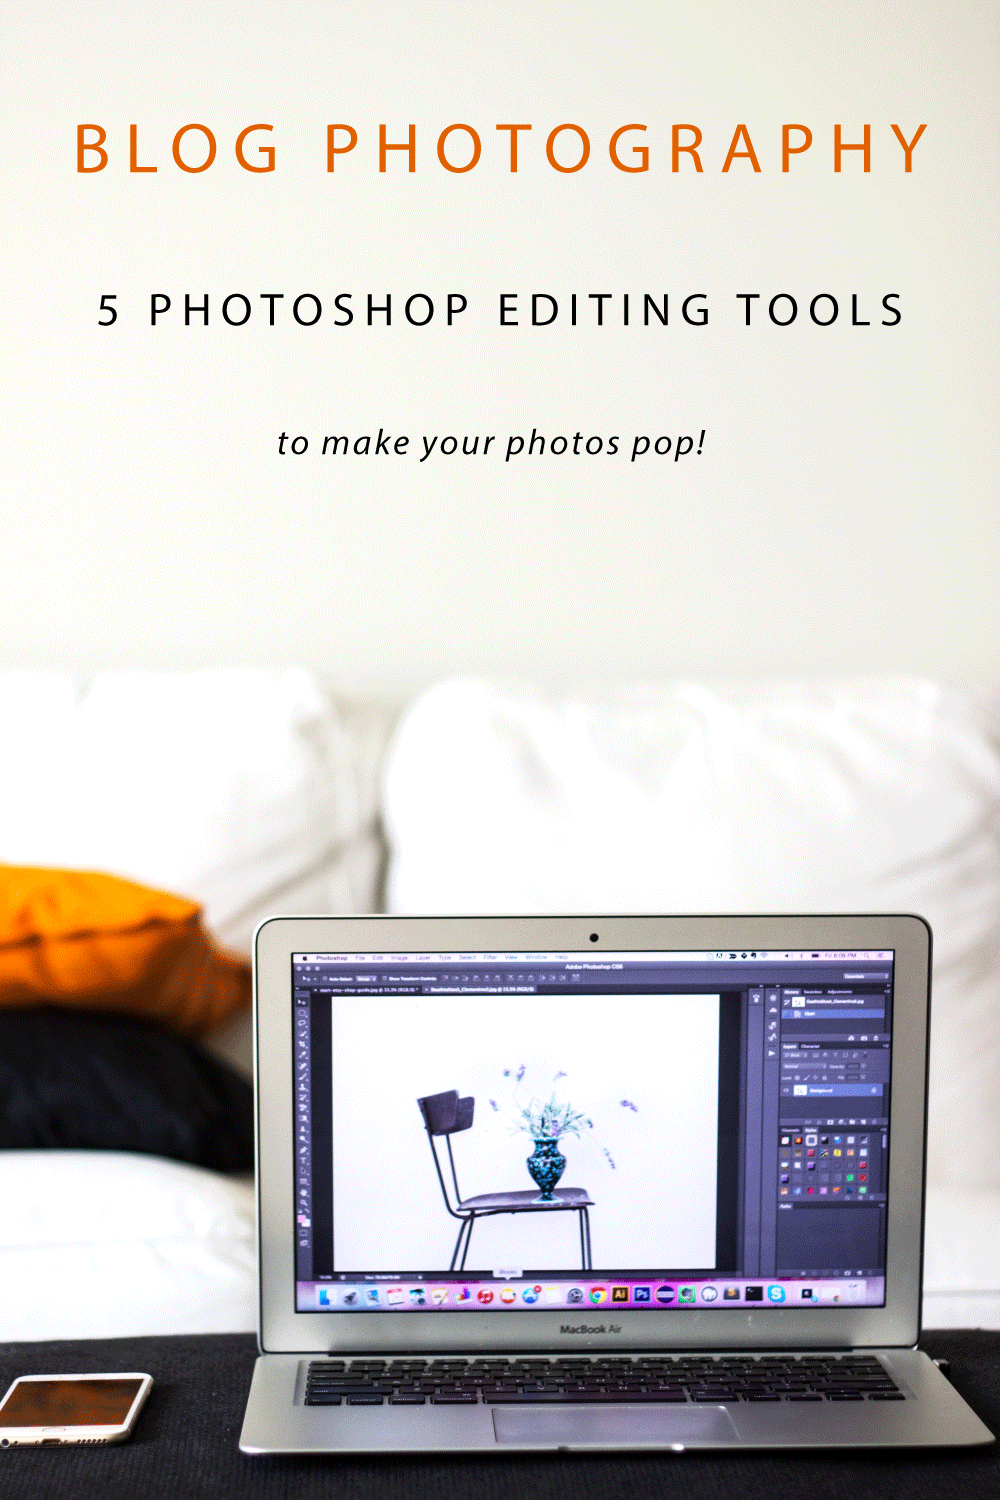 Photoshop-tools-blog-photos3.png